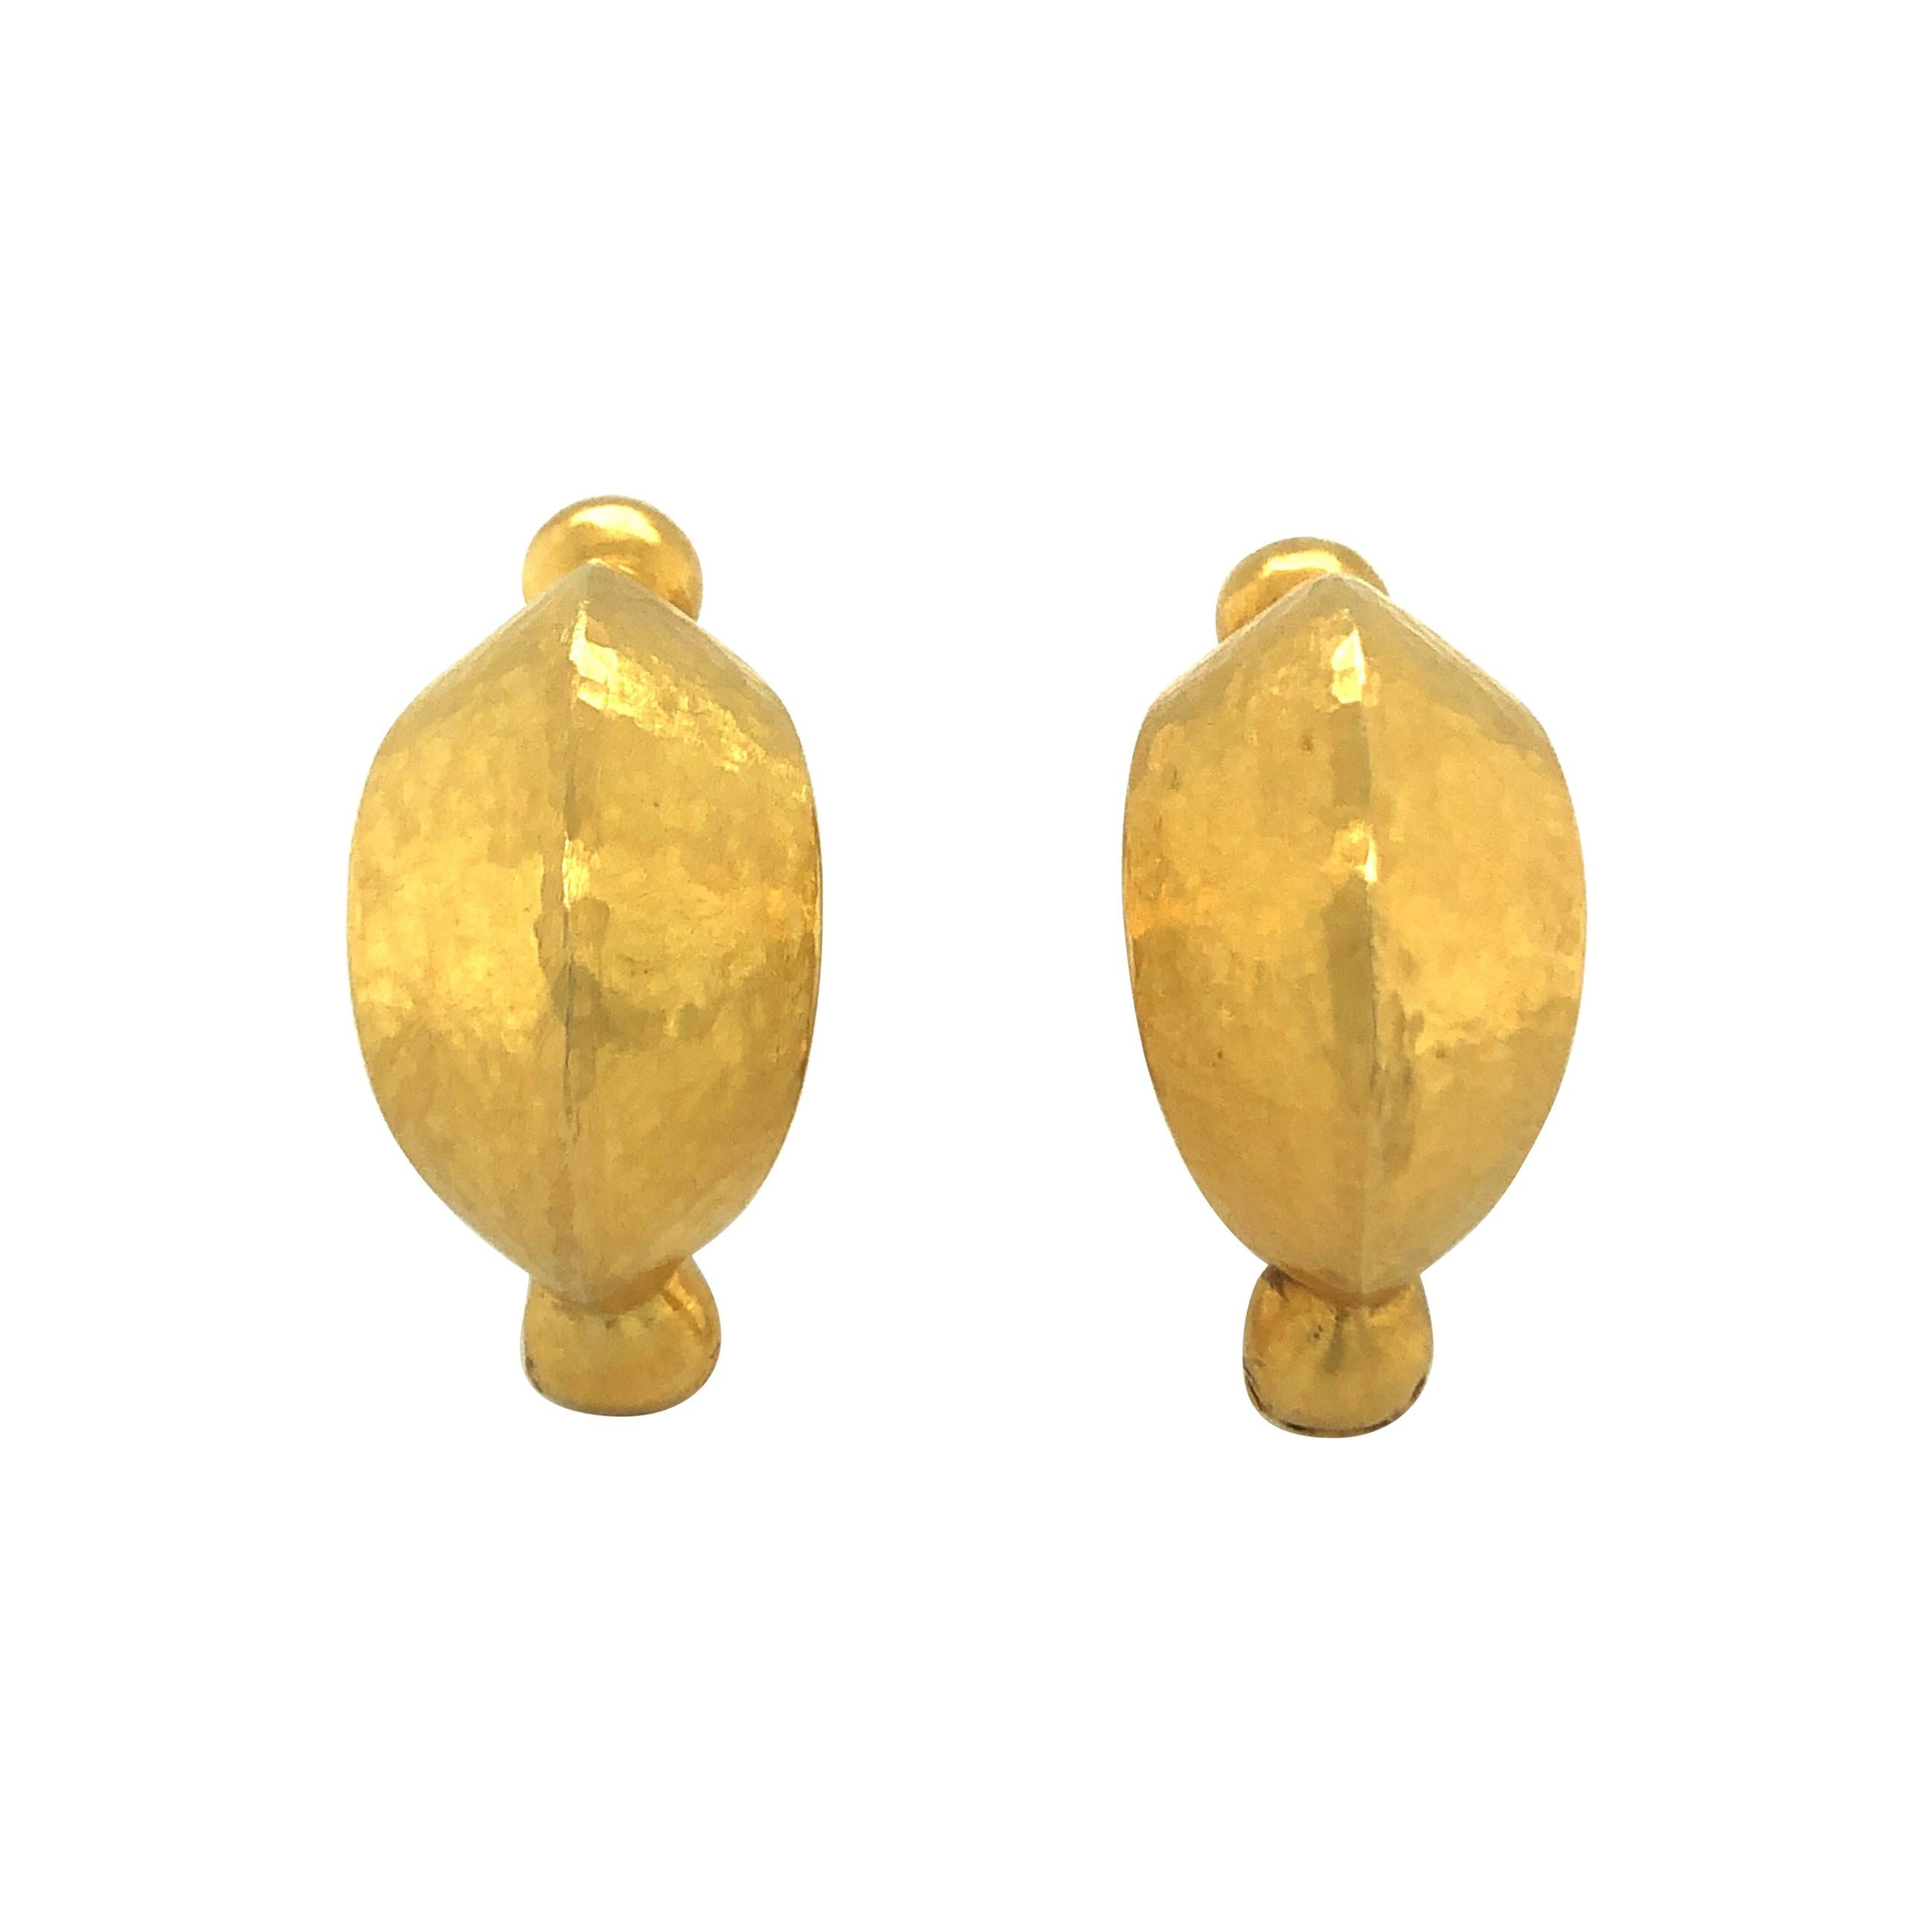 18 Karat Yellow Gold Neolithic Hoop Earrings by Lalaounis